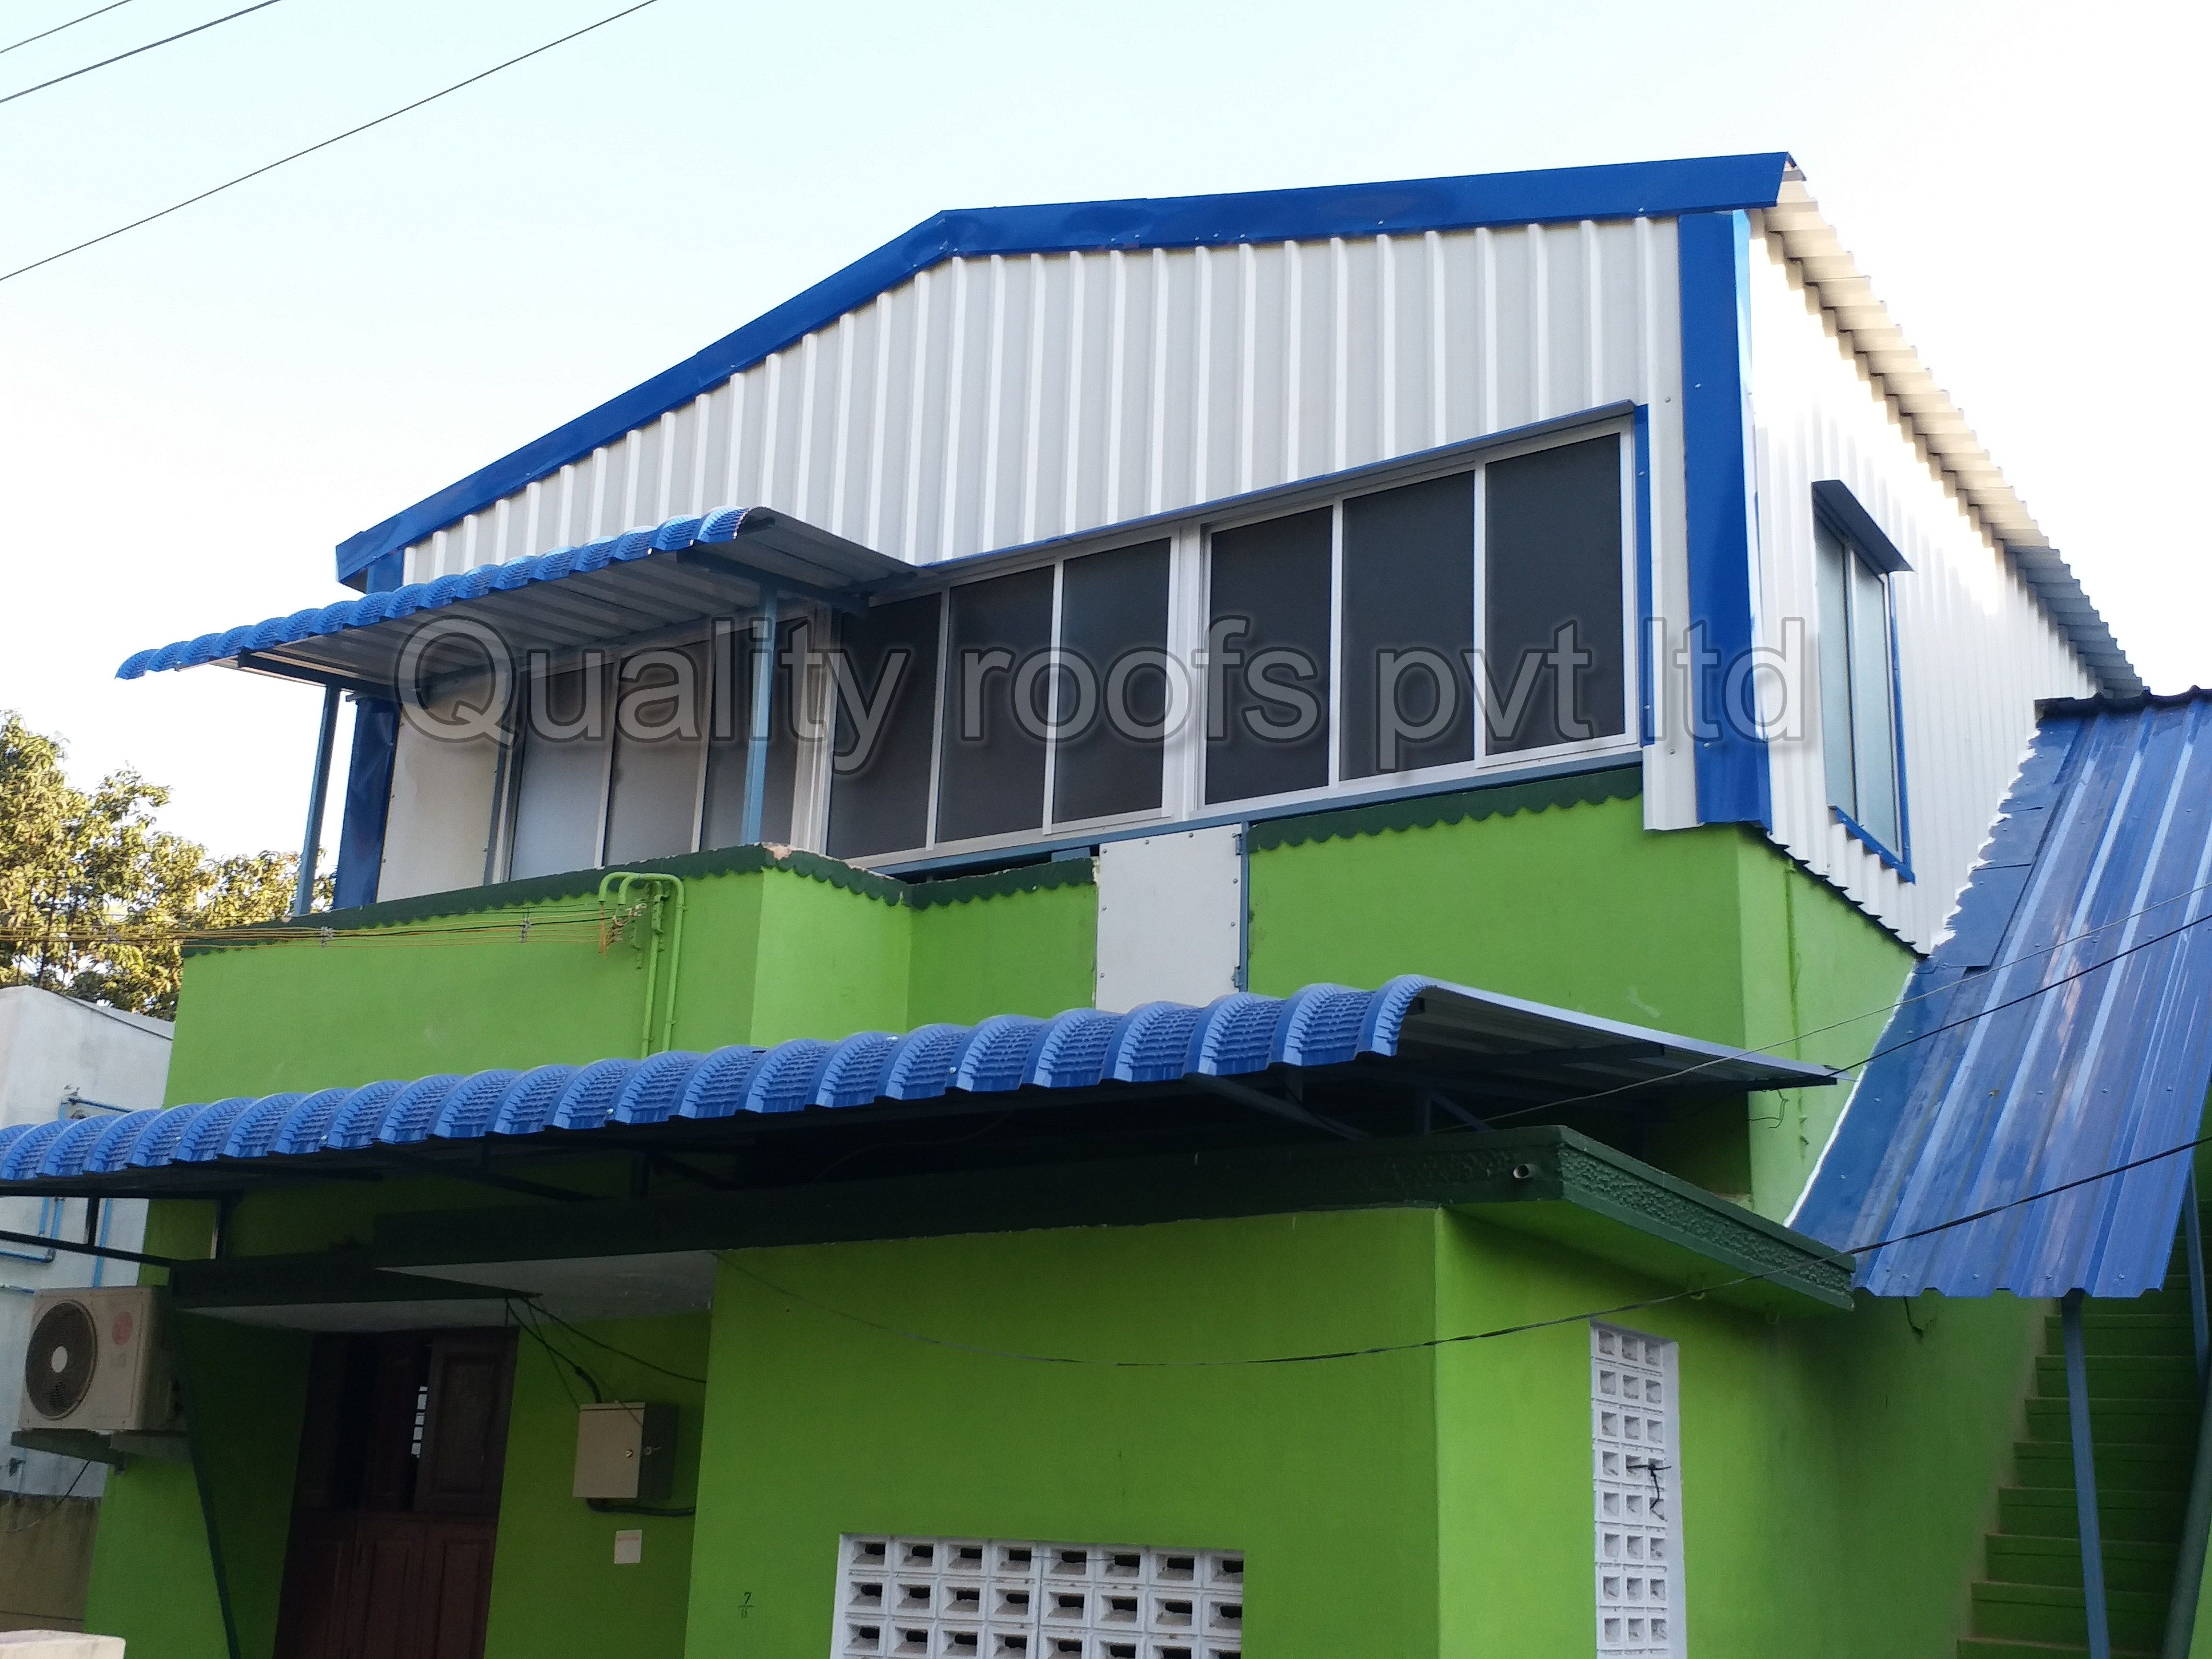 We Are The Leading Terrace Shed Roofing Contractors In 2018 We Are Doing All Kinds Of Metal Roofing Con In 2020 Metal Roofing Contractors Roofing Contractors Roofing